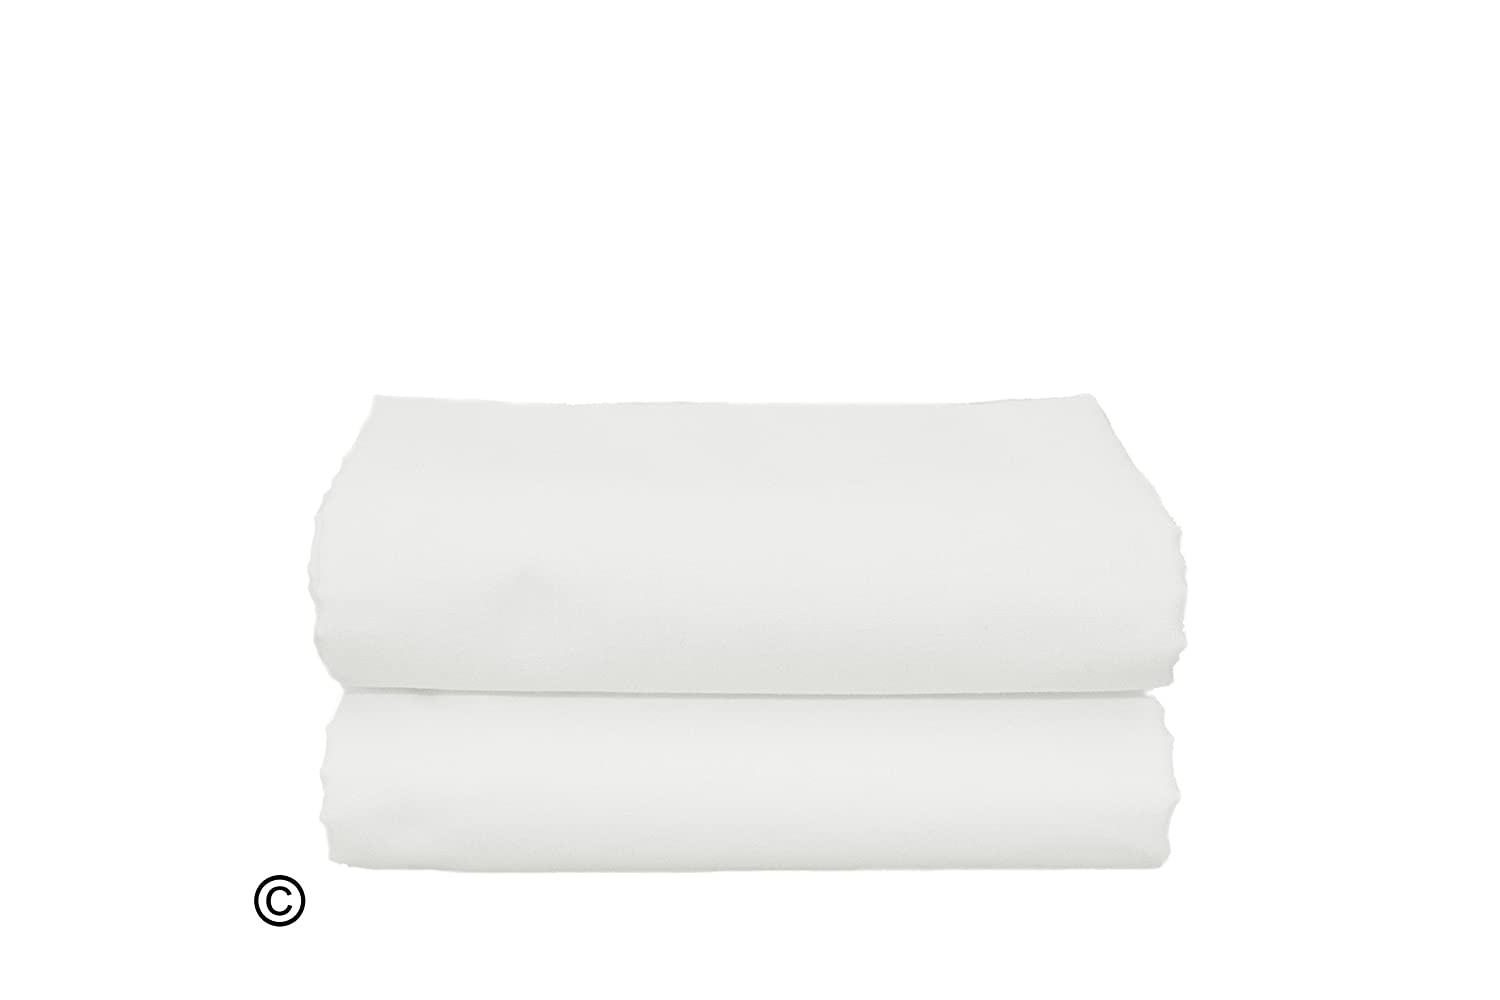 Cot Bed Pillow Case 100% Cotton White SOFTOUCH